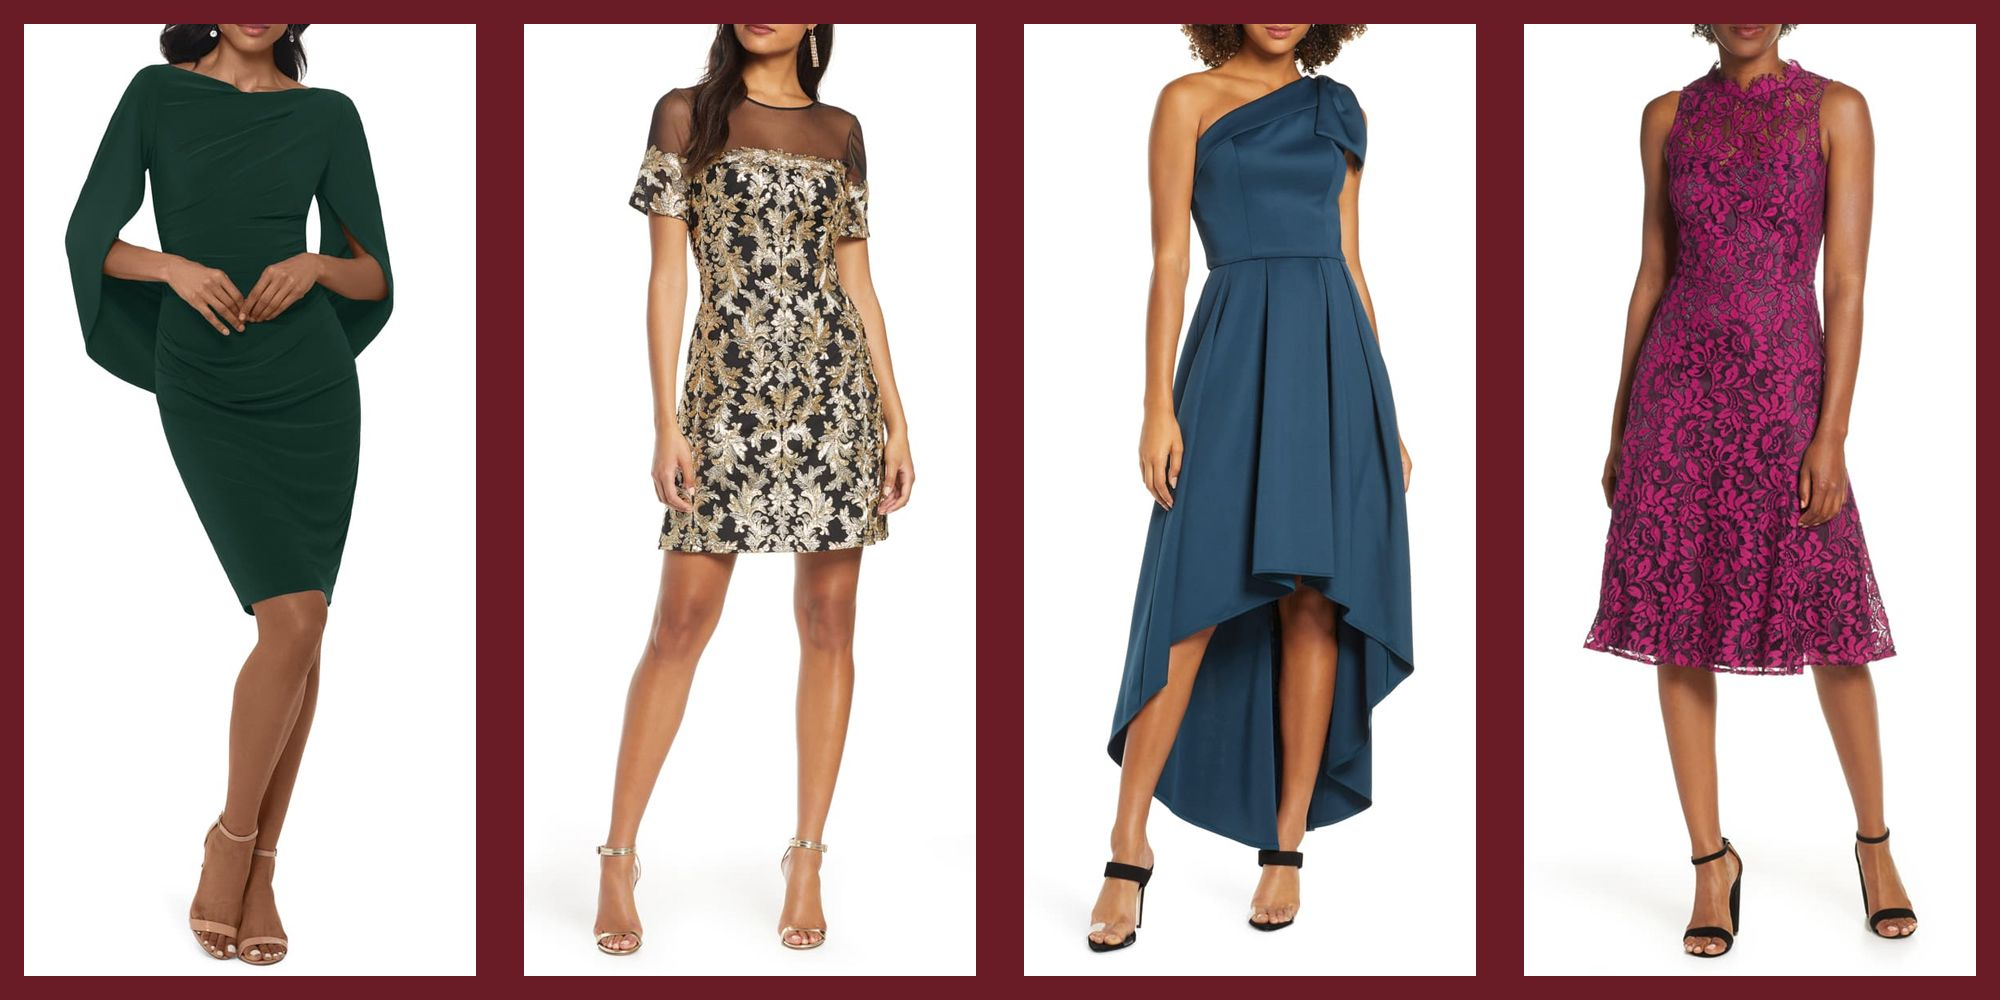 20 Best Winter Wedding Guest Dresses What To Wear To A Winter Wedding,Weddings Dresses Online